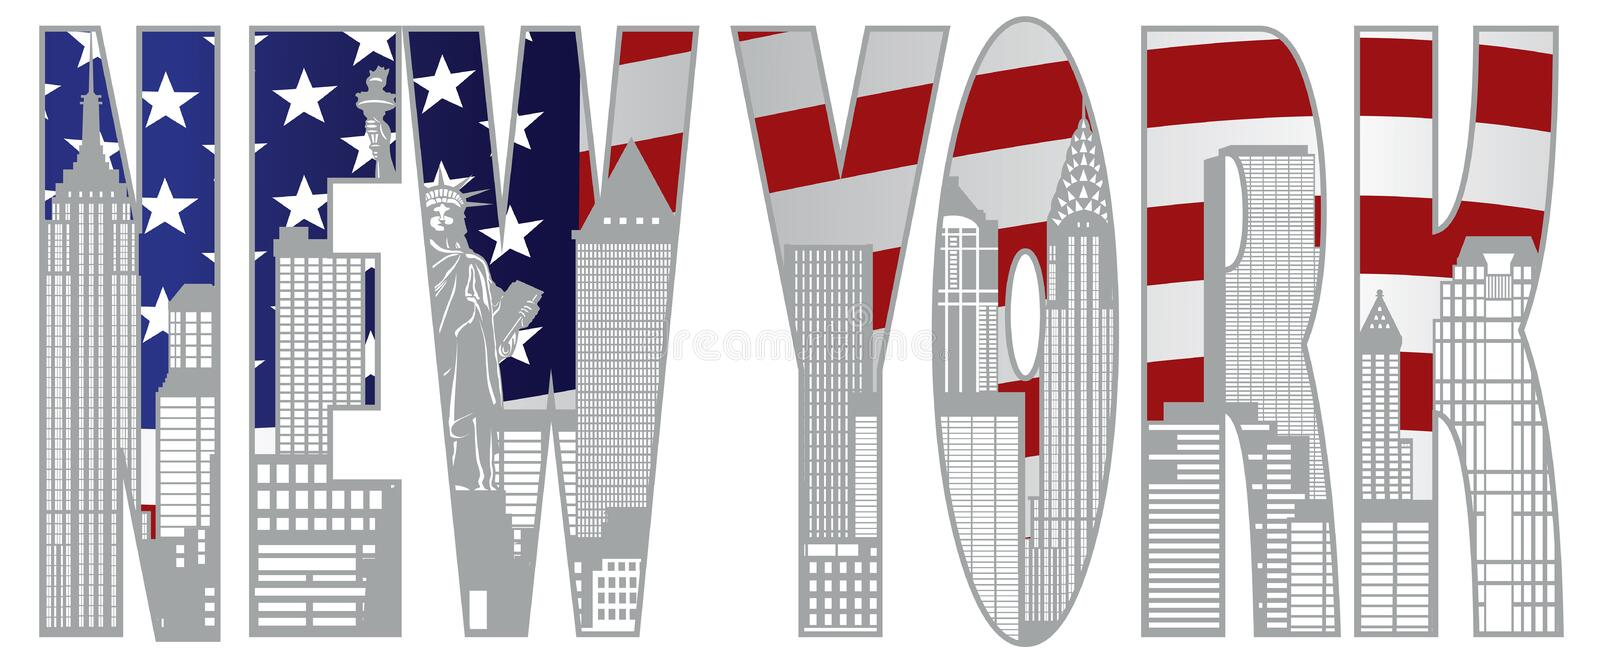 New- York Cityskyline-Text Ooutline-Vektor-Illustration lizenzfreie abbildung